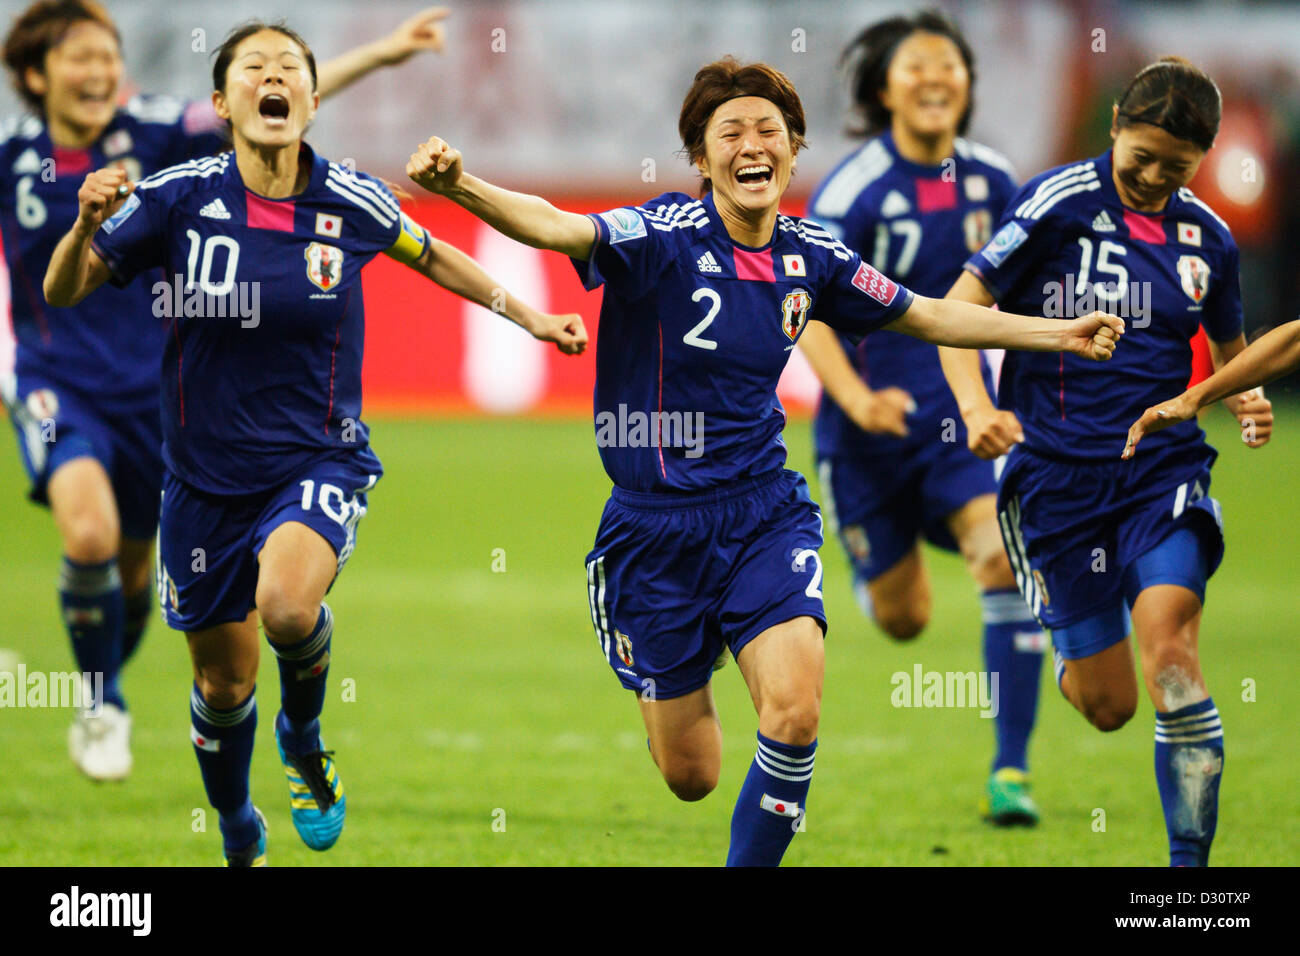 Japan team players celebrate after defeating the United States to win the FIFA Women's World Cup final. - Stock Image